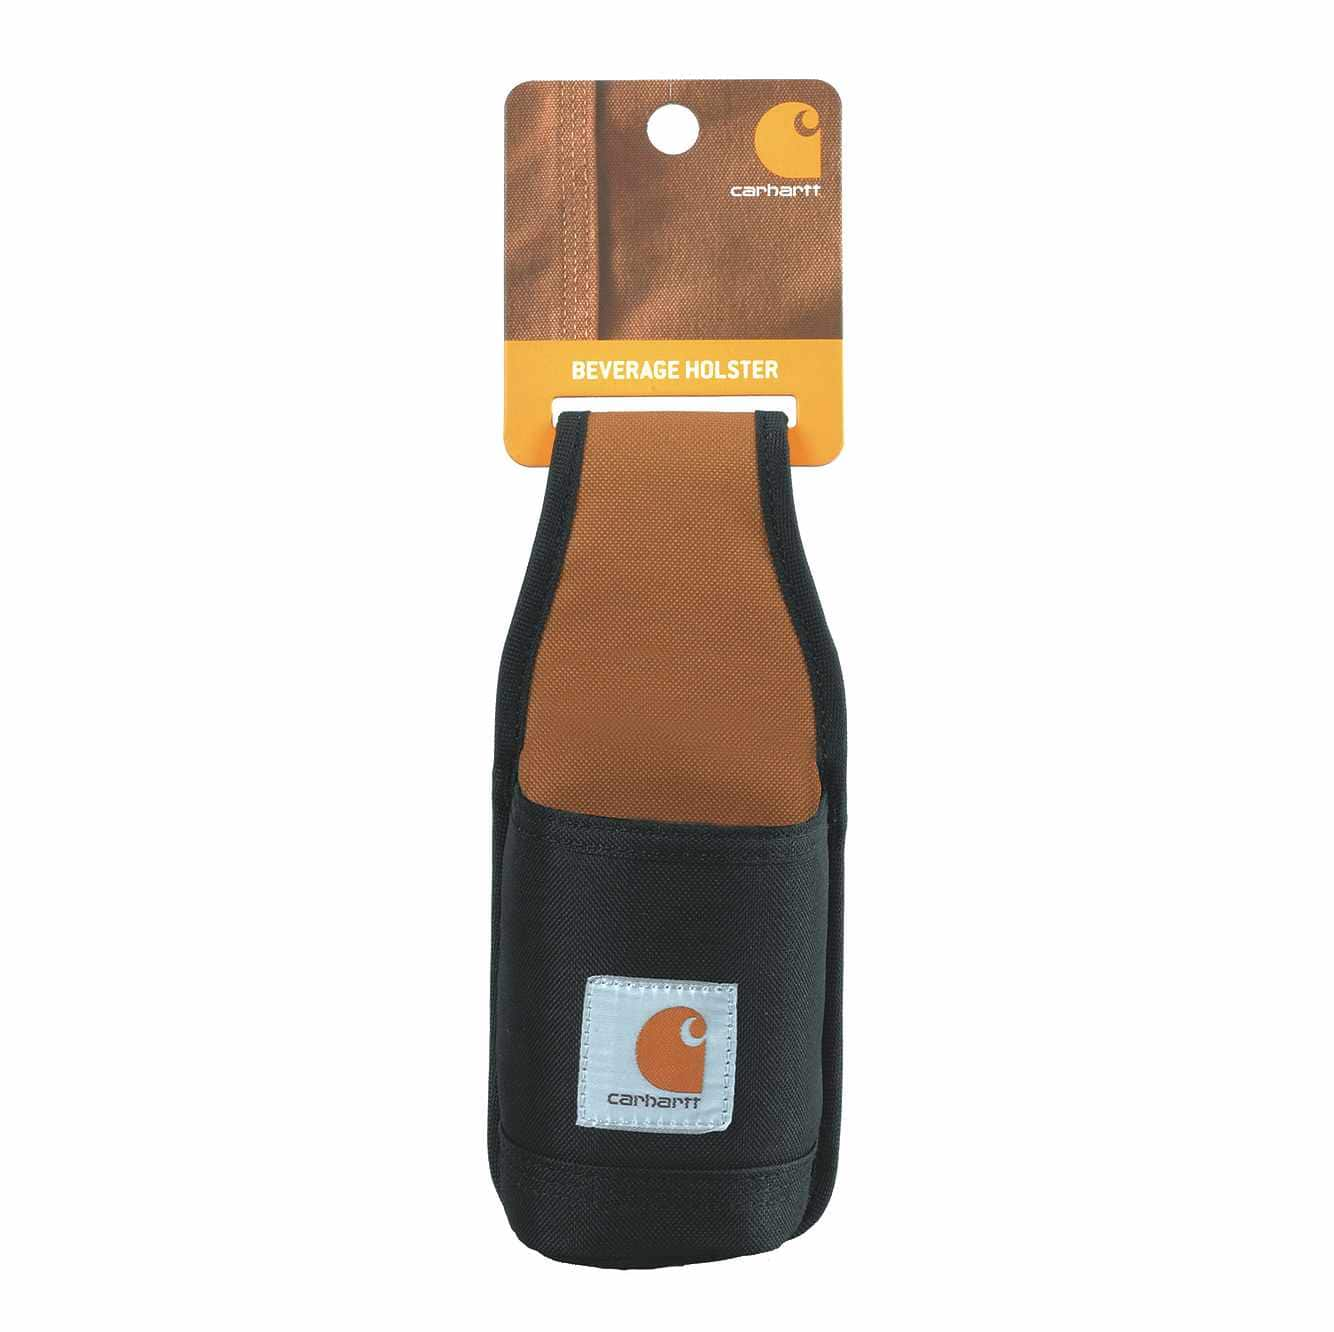 Picture of Beverage Holster in Black